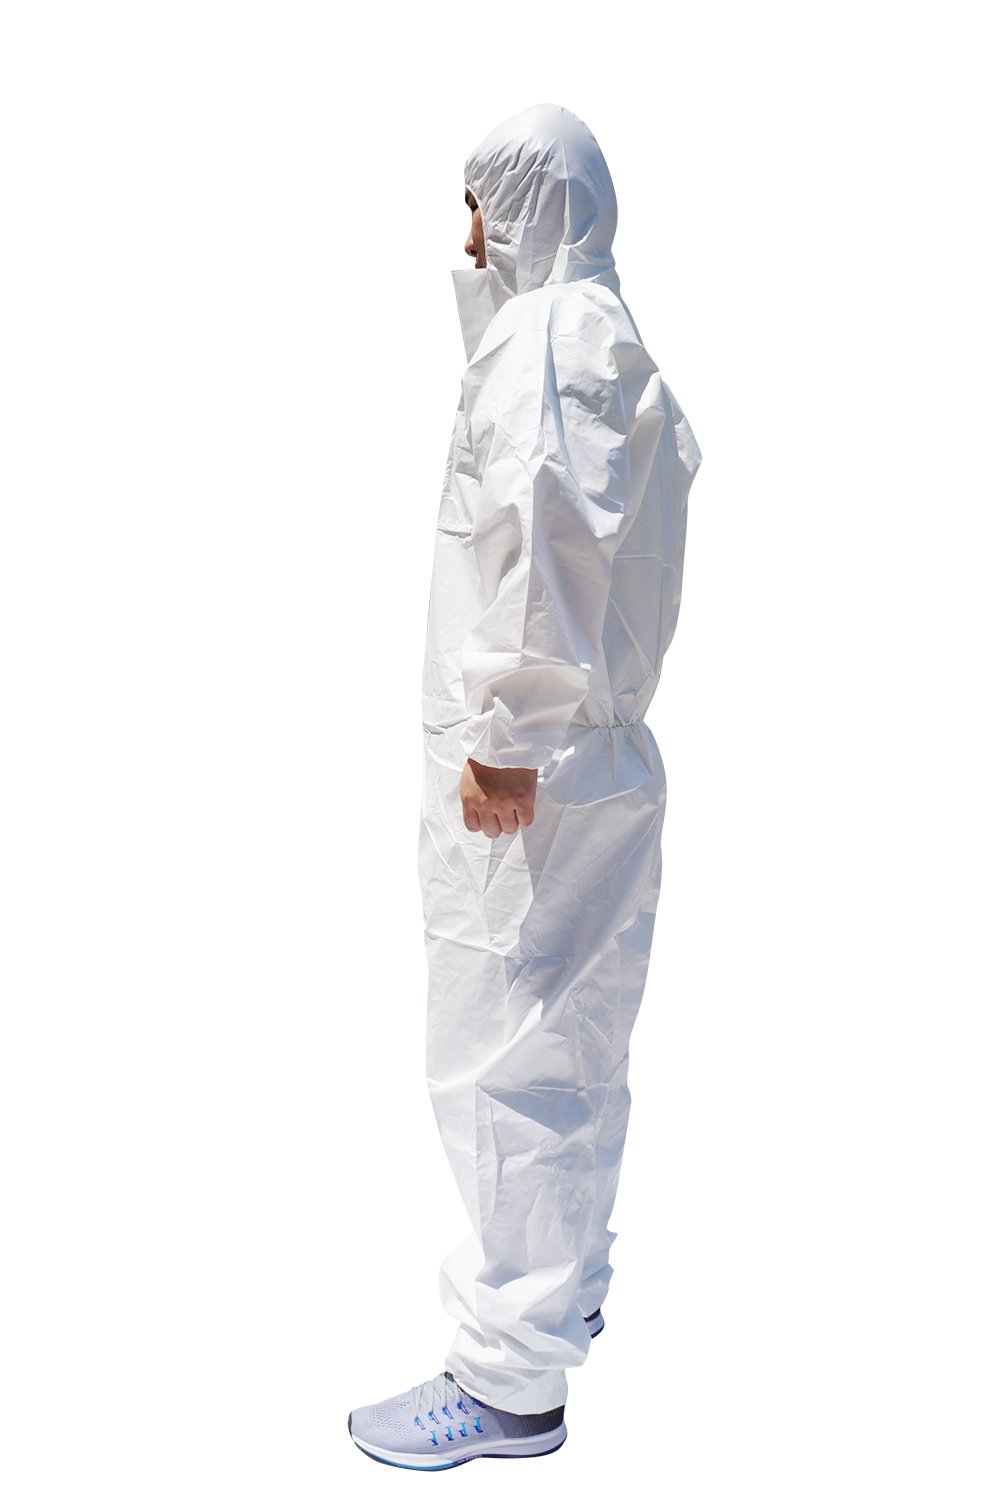 2X Pack of 25 Serged Seam Dupont TY127SWH2X0025VP Coveralls with Hoods White